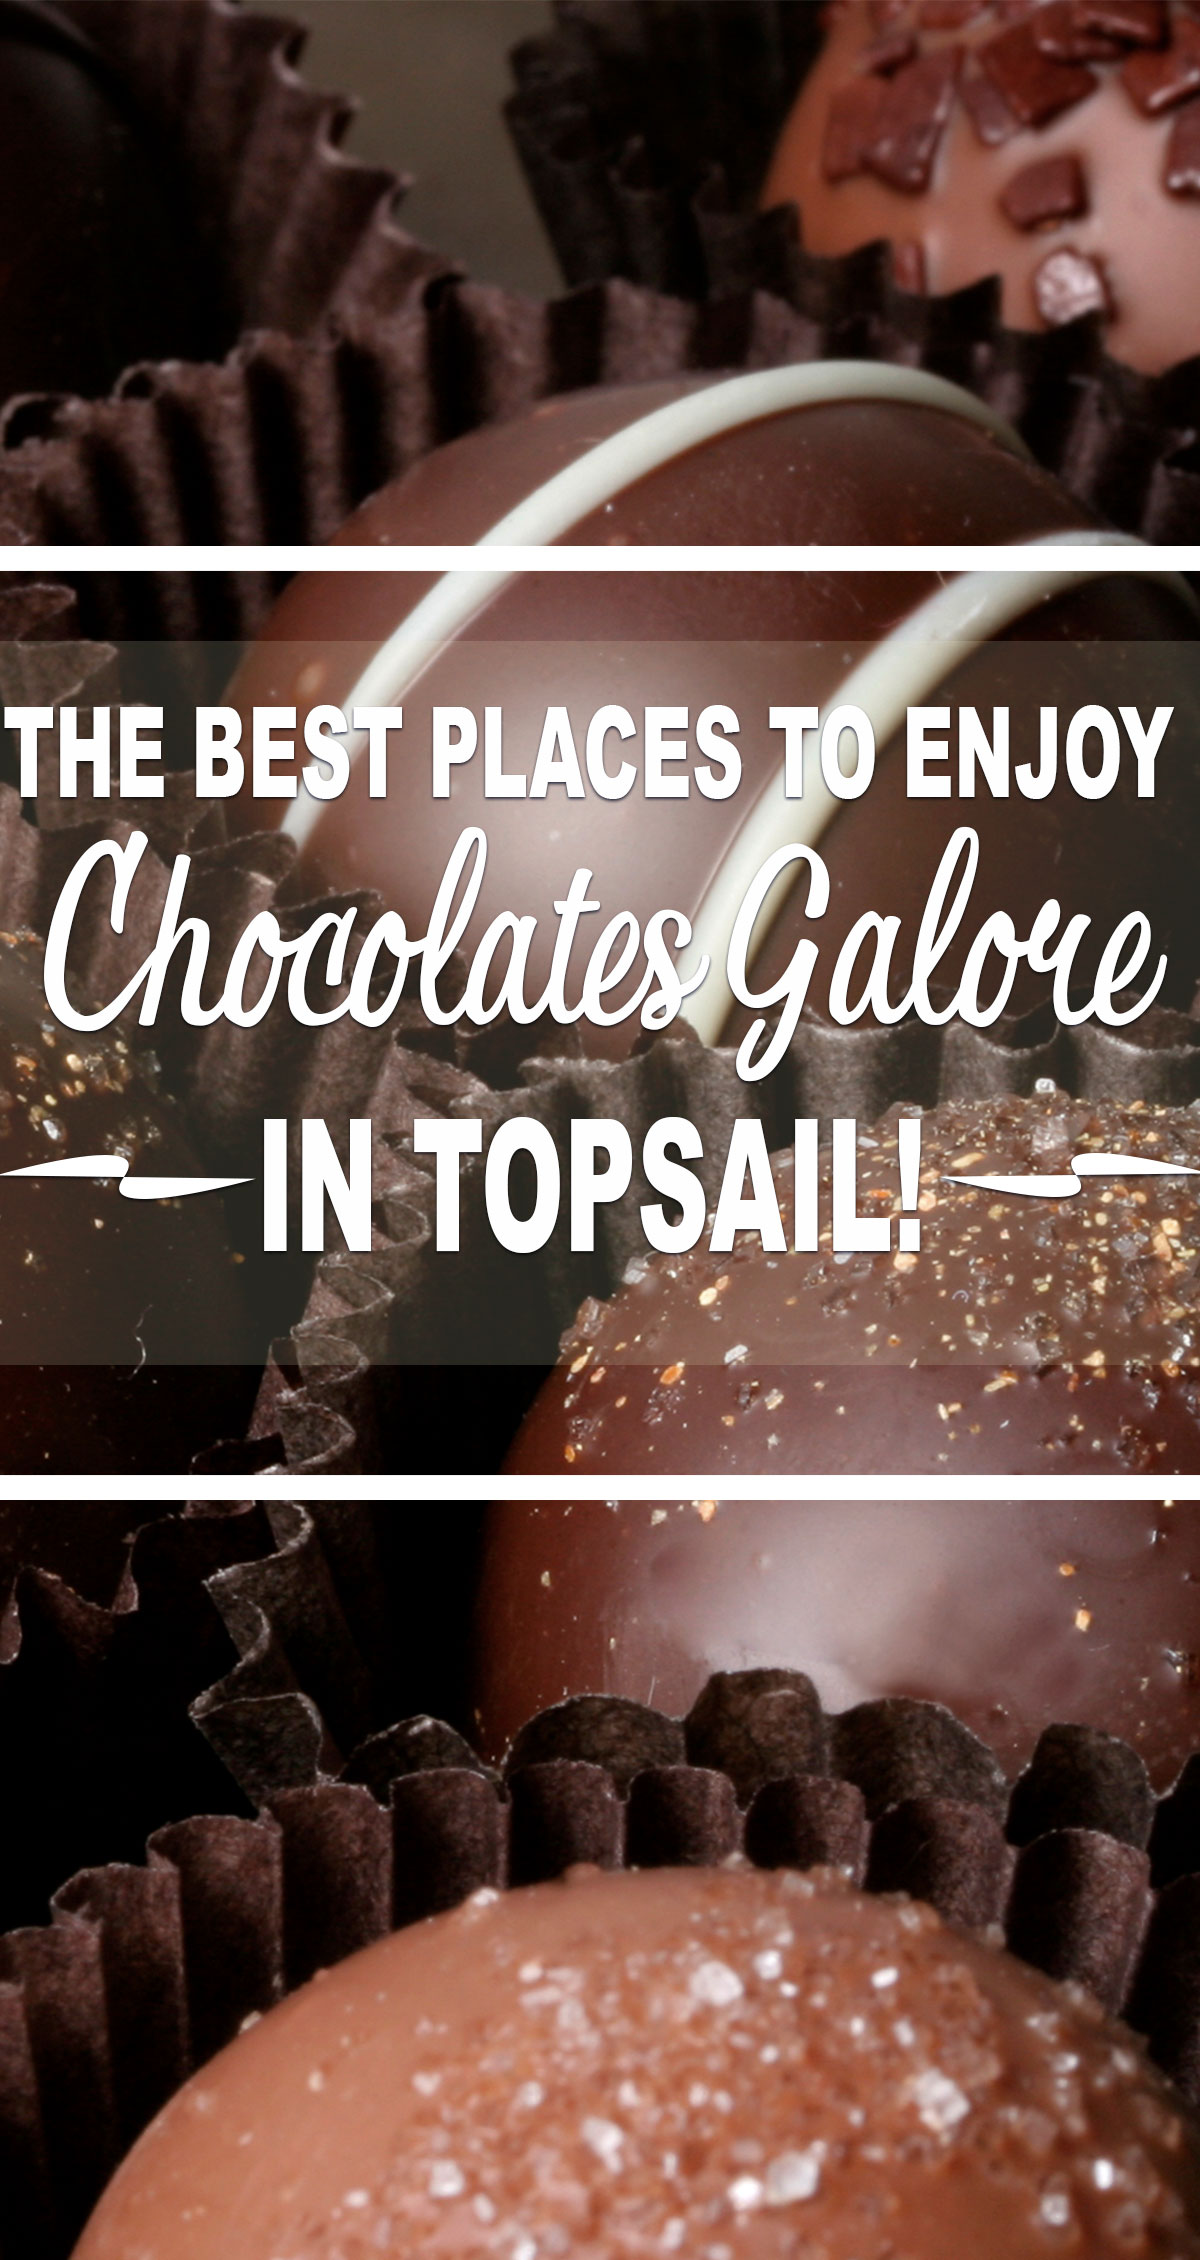 The Best Places to Enjoy Chocolates Galore in Topsail Pin